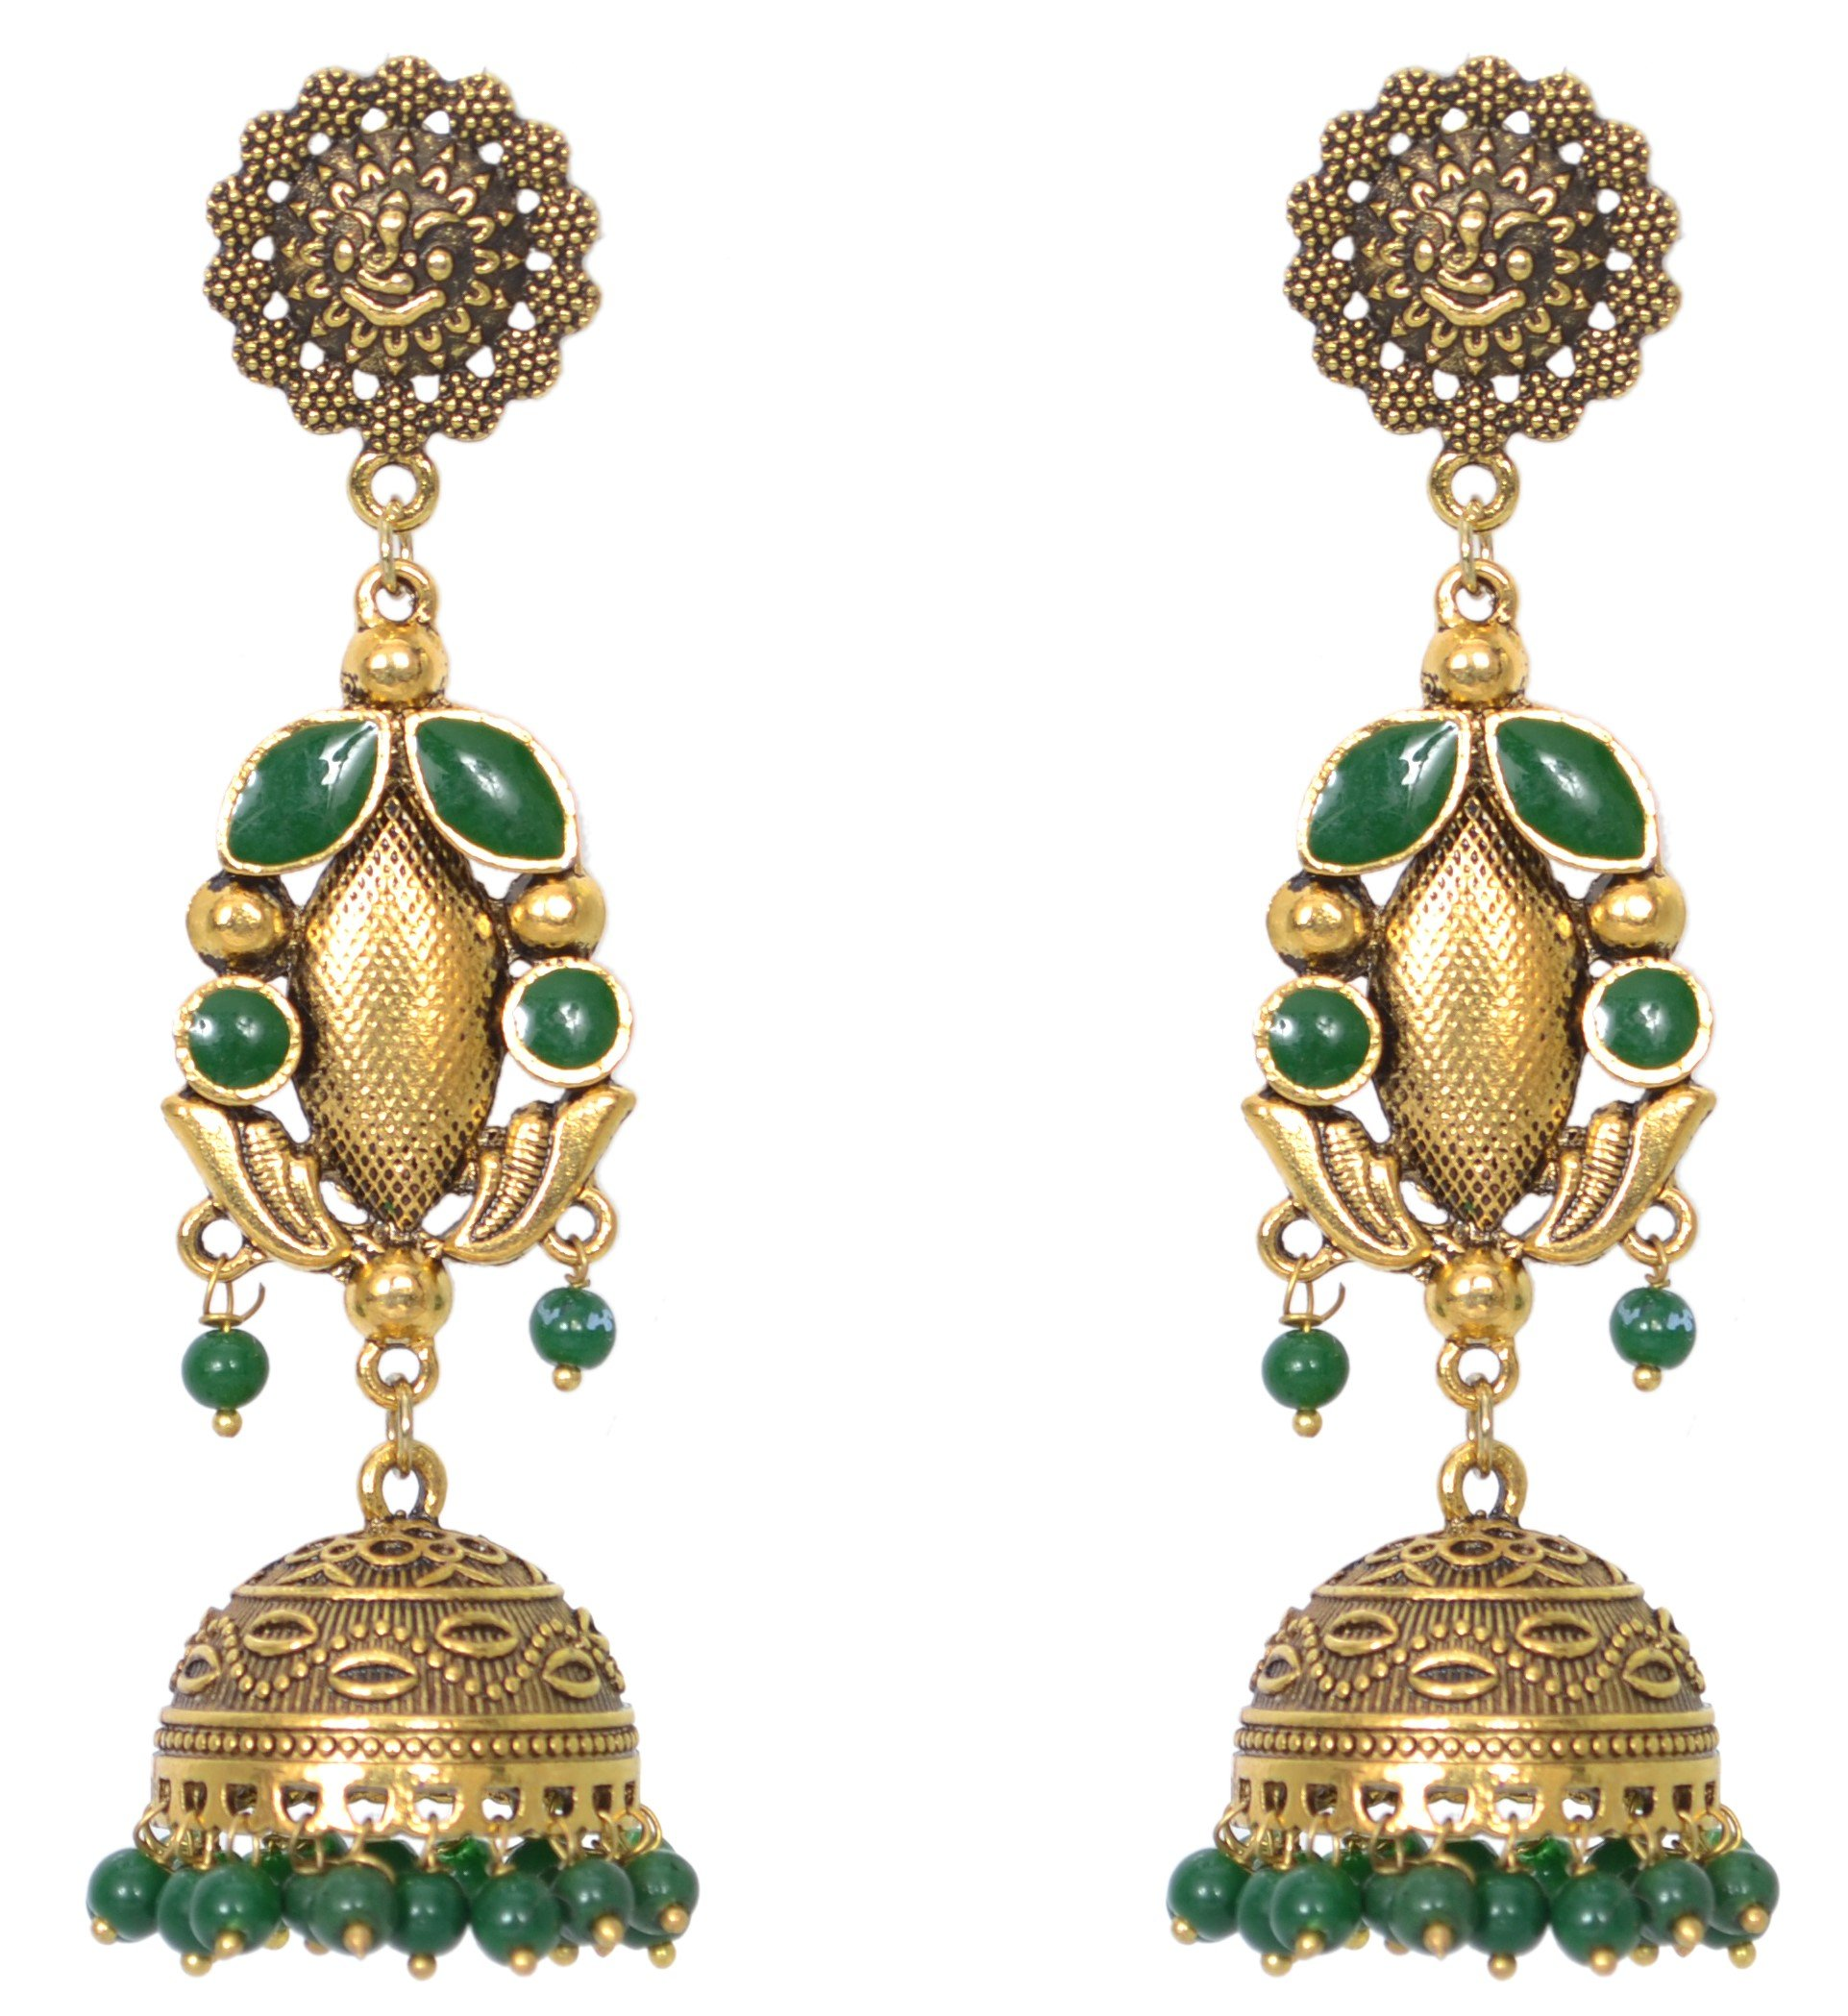 Sansar India Oxidized Stud Long Jhumka Indian Earrings Jewelry for Girls and Women 1189